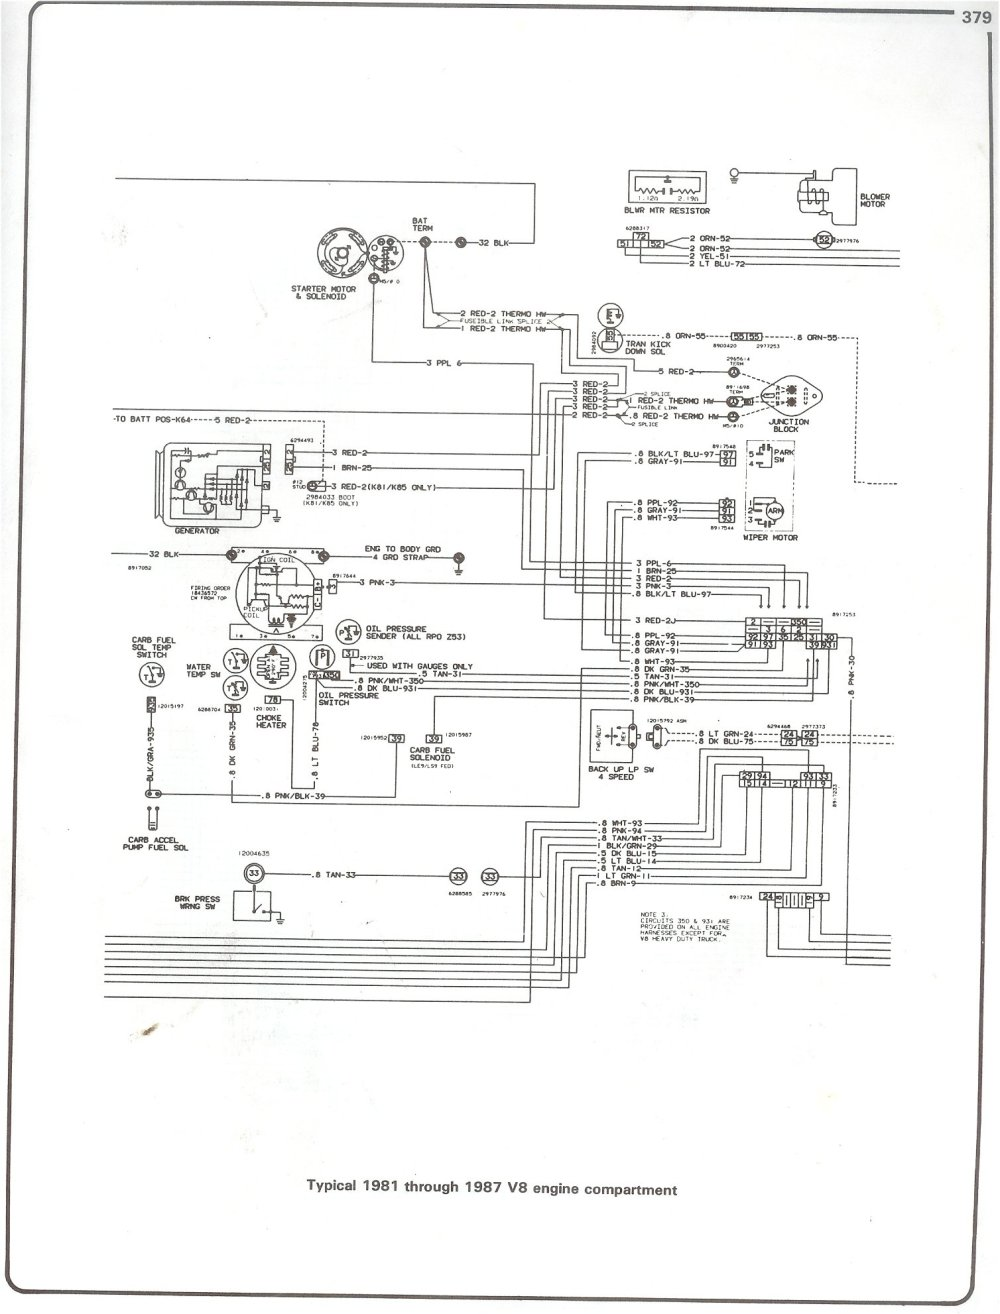 medium resolution of complete 73 87 wiring diagrams 1975 chevy nova wiring diagram 1975 chevy blazer wiring diagram